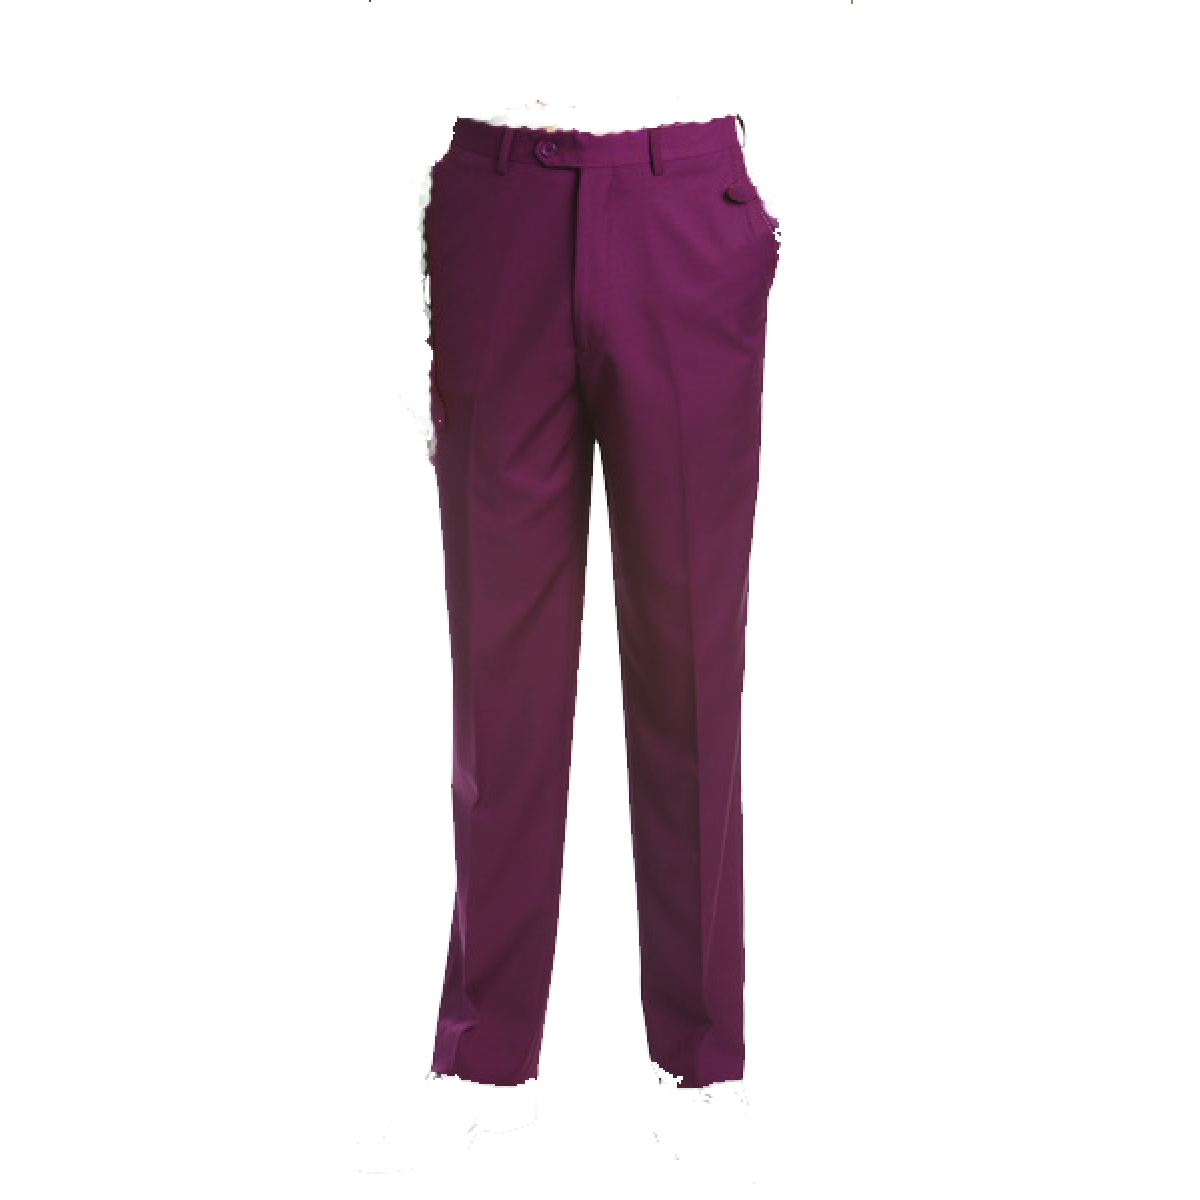 Trouser PNG Images Transparent Free Download.